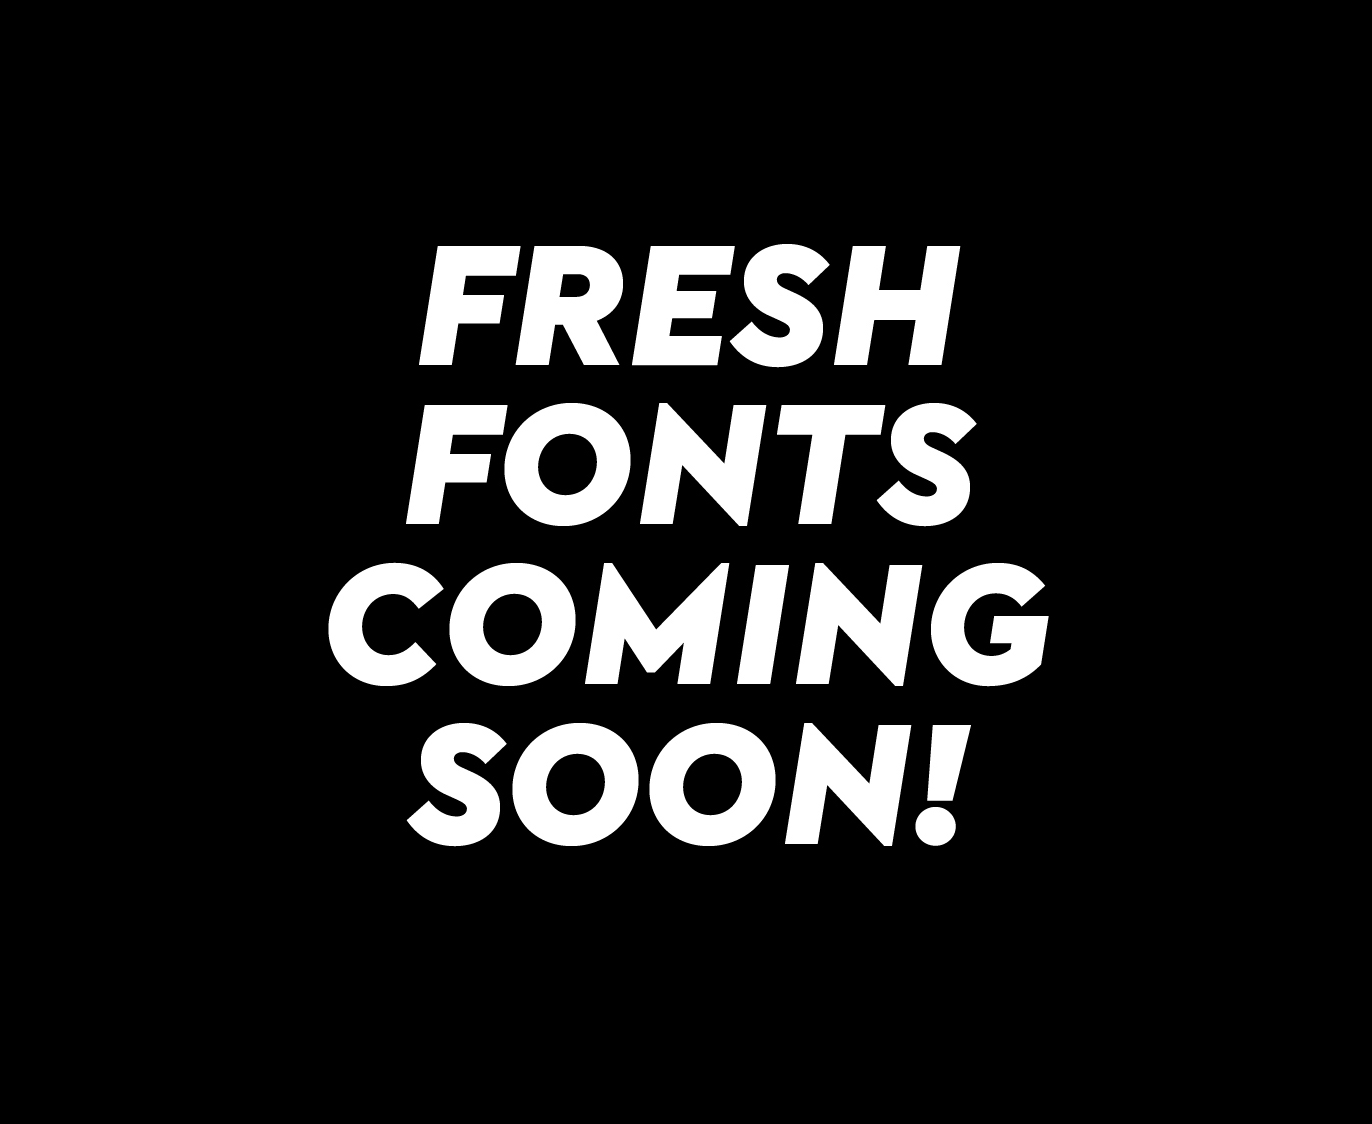 Fresh fonts coming soon!